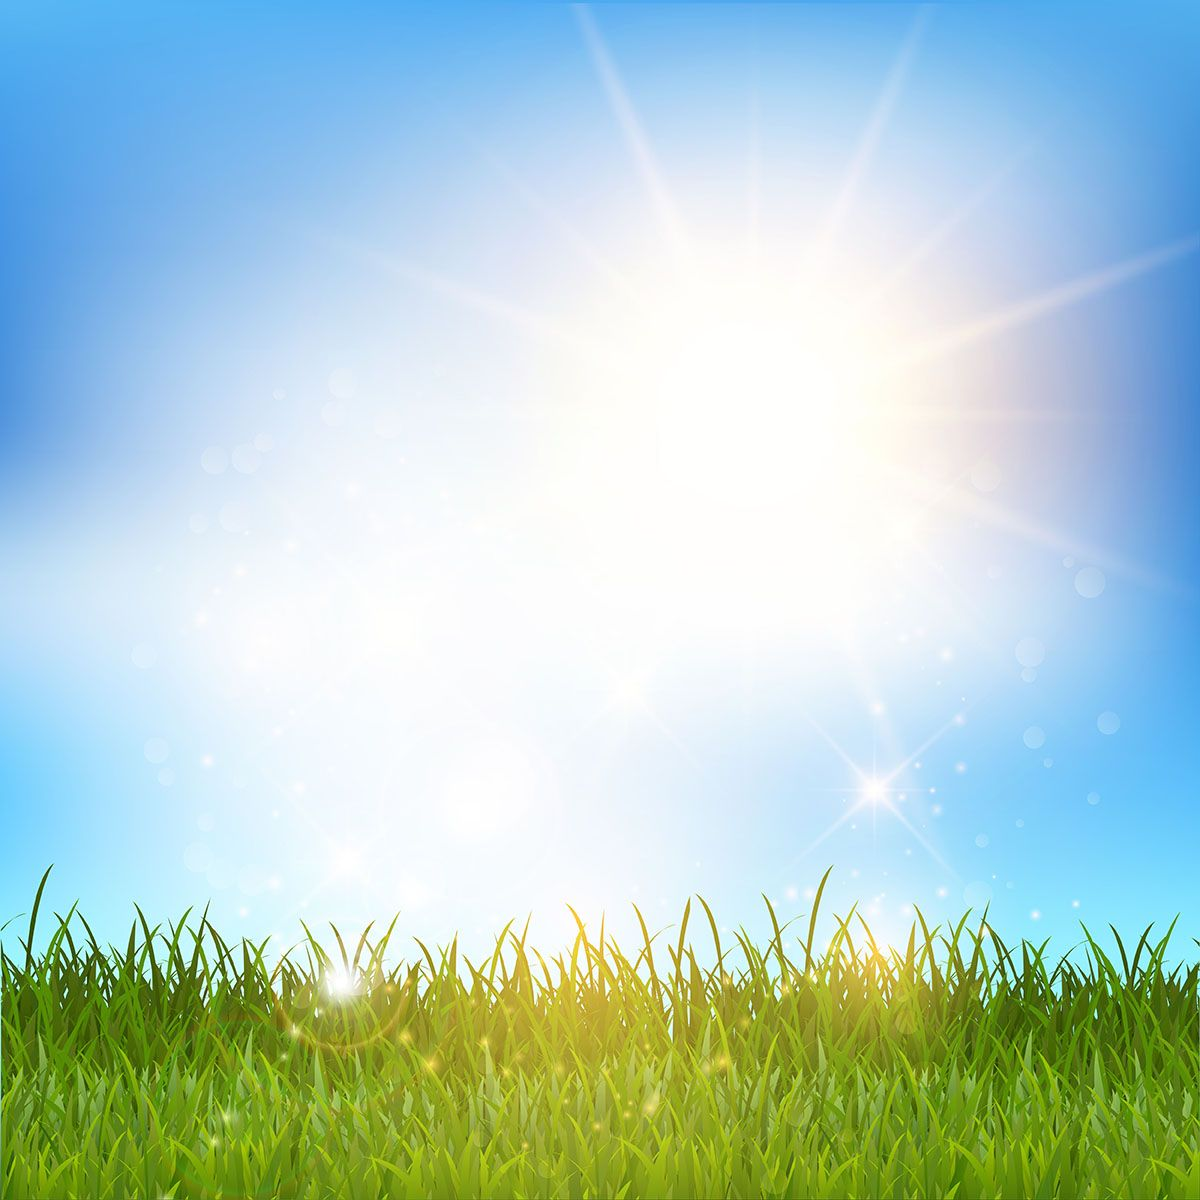 Blue Sky And Grass Landscape Background For Photography Free Spring Wallpaper Landscape Pictures